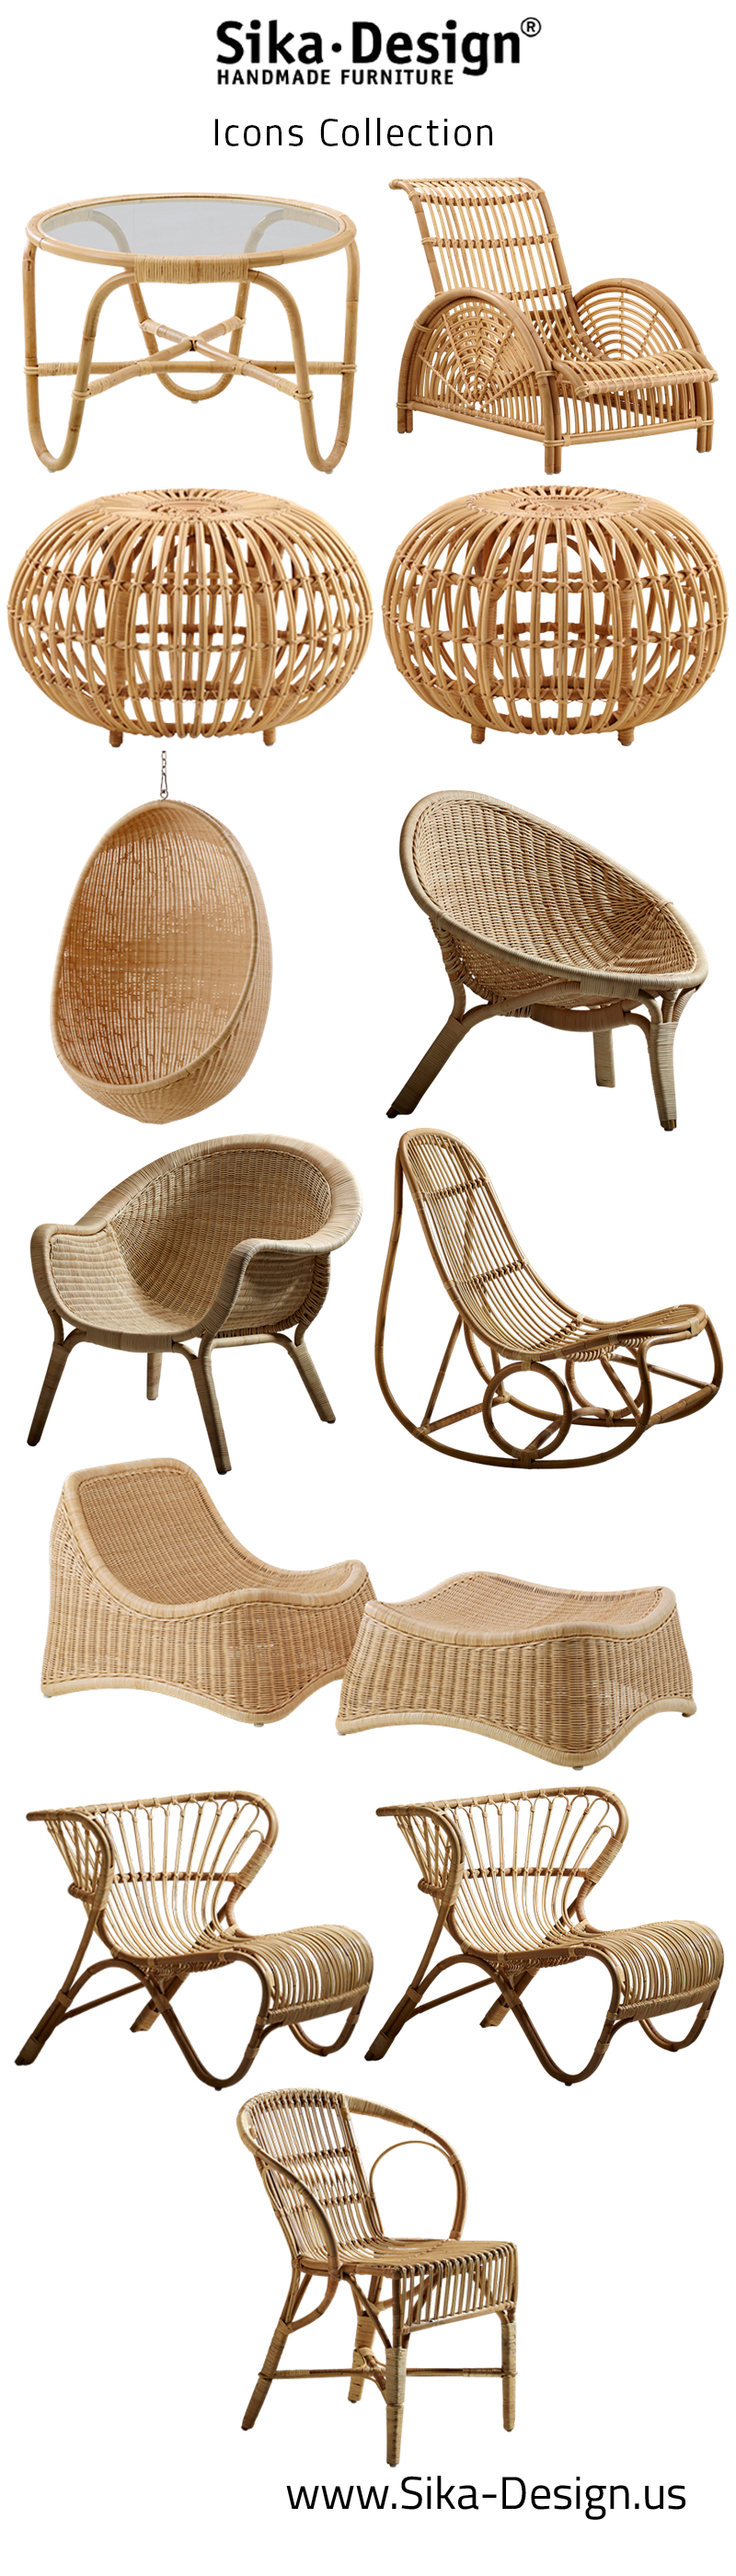 Sika Design Icons Collection featuring pieces from Nanna Ditzel